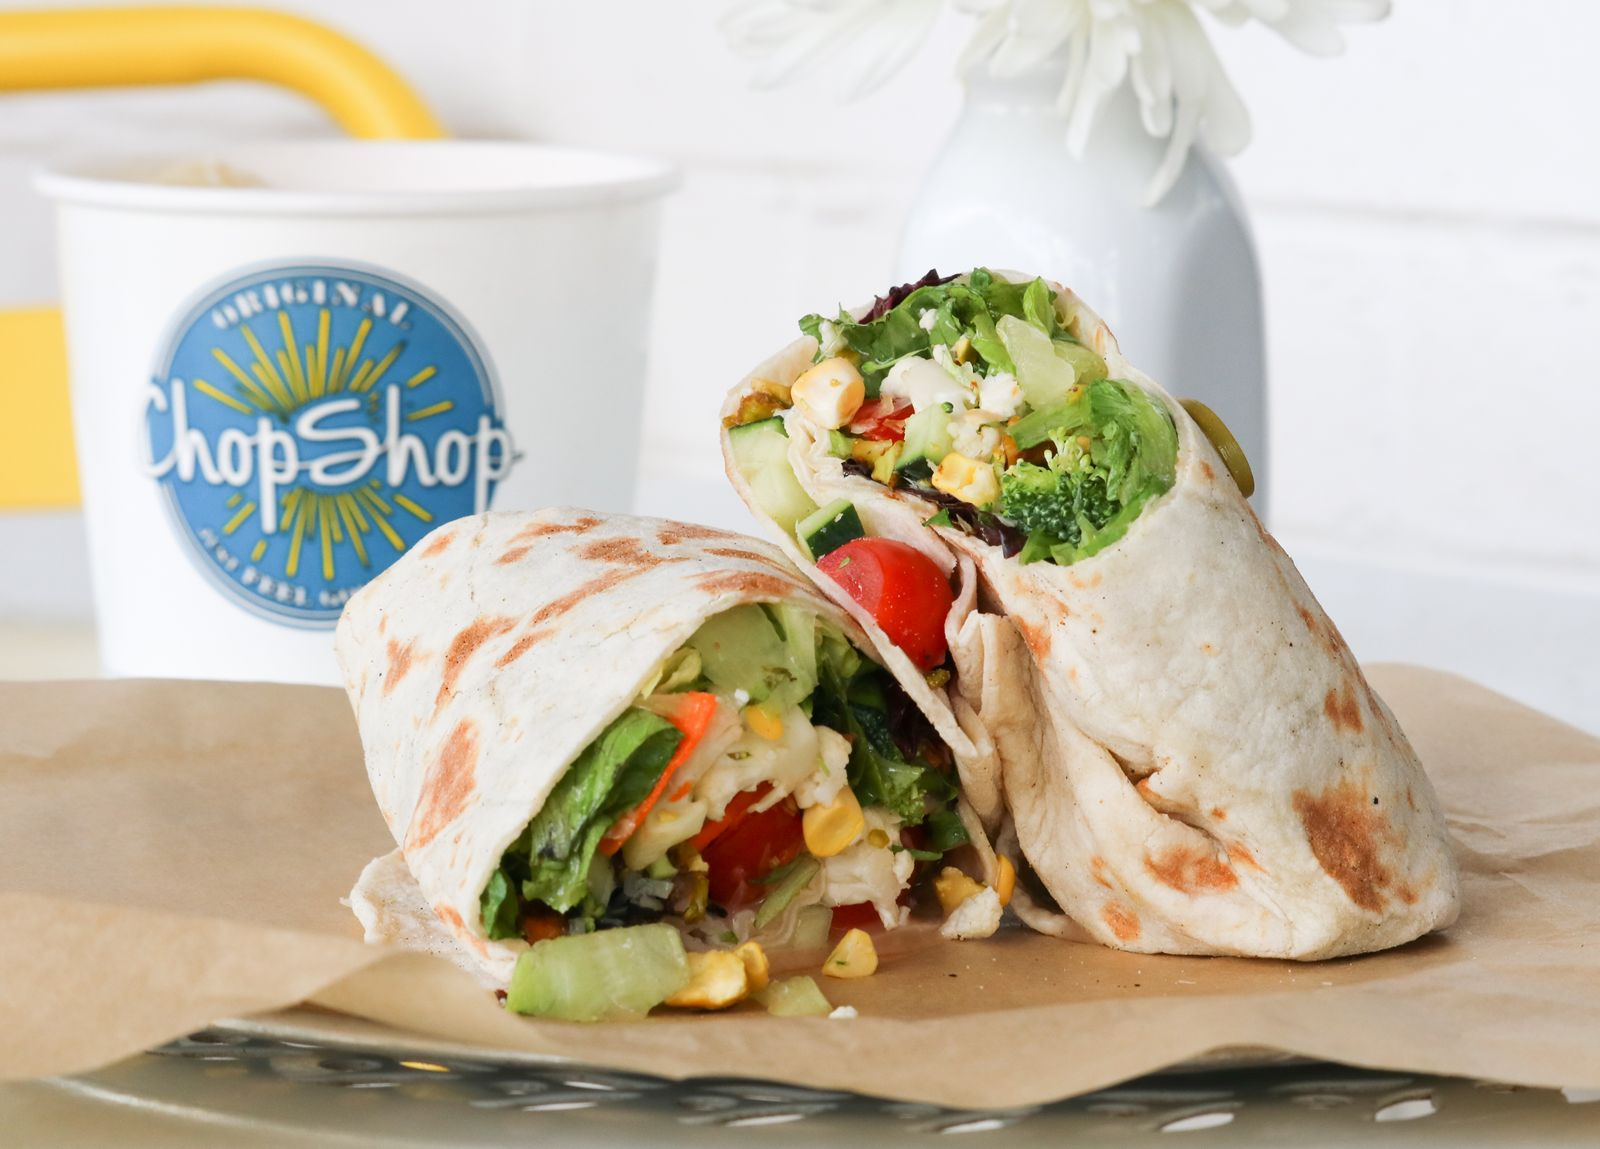 Original ChopShop Brings 'Just Feel Good Food' to Another Area of Tempe